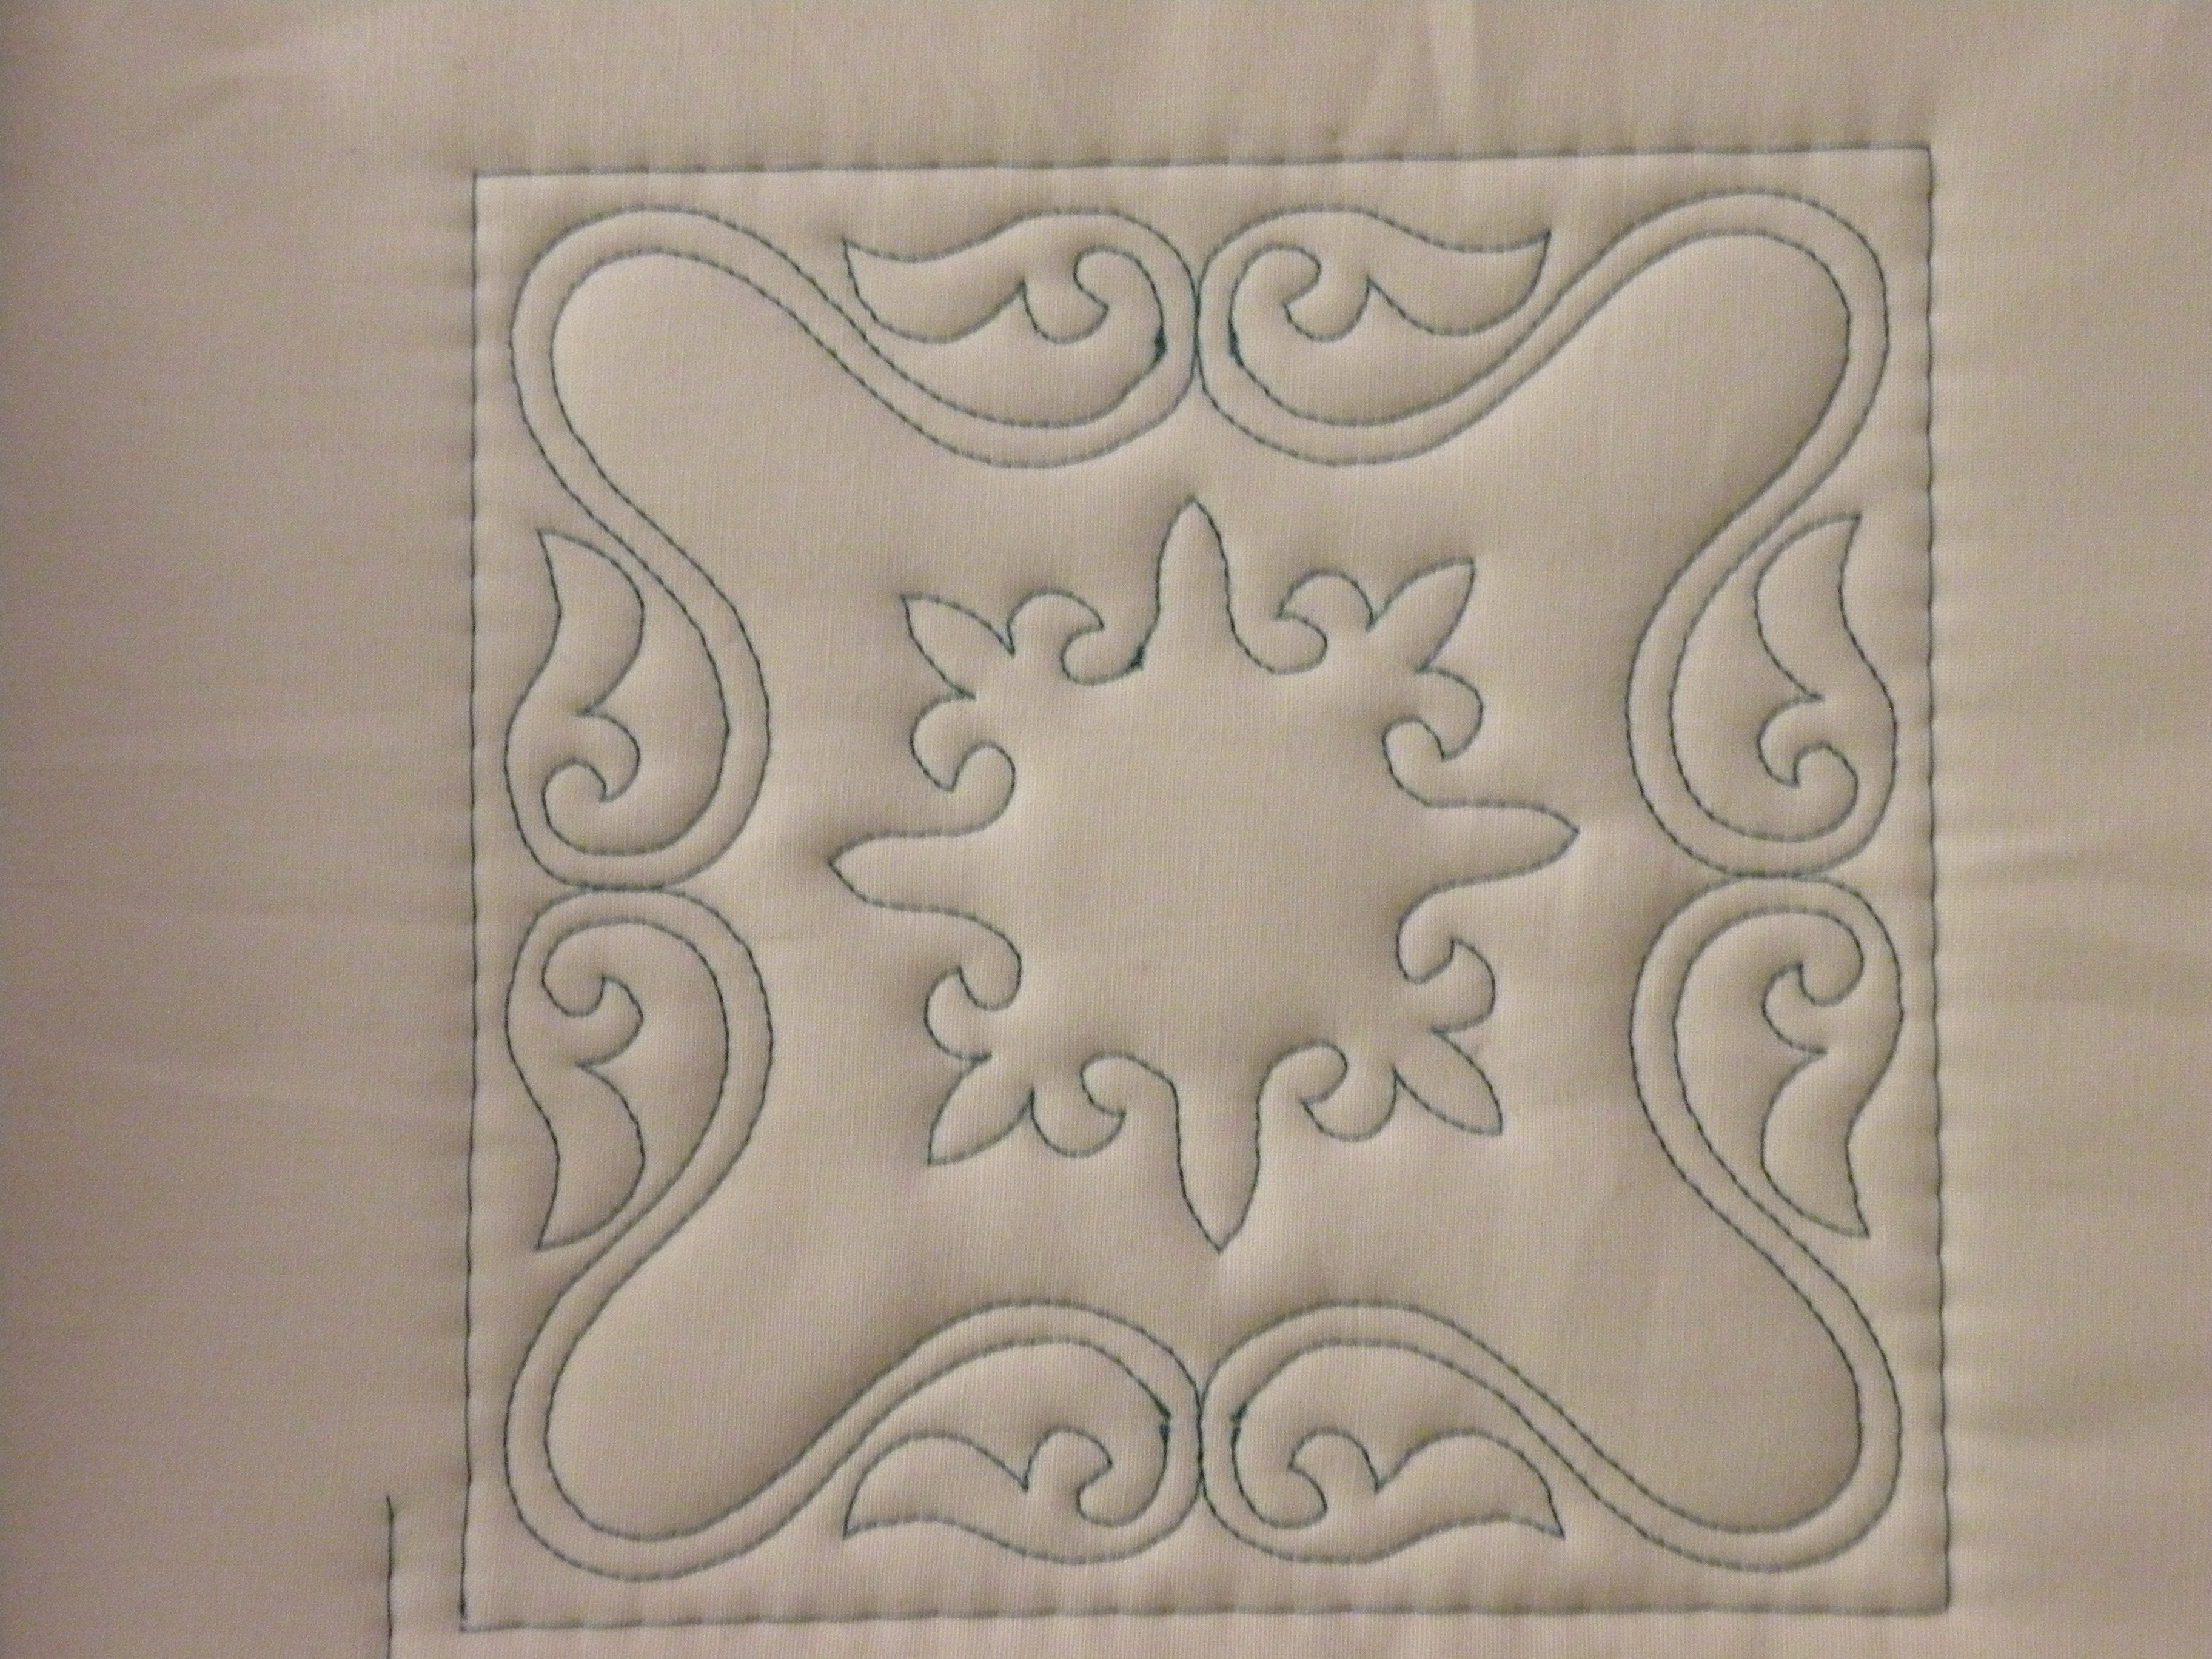 Name:  Embroidery quilting design.jpg Views: 123 Size:  1.88 MB